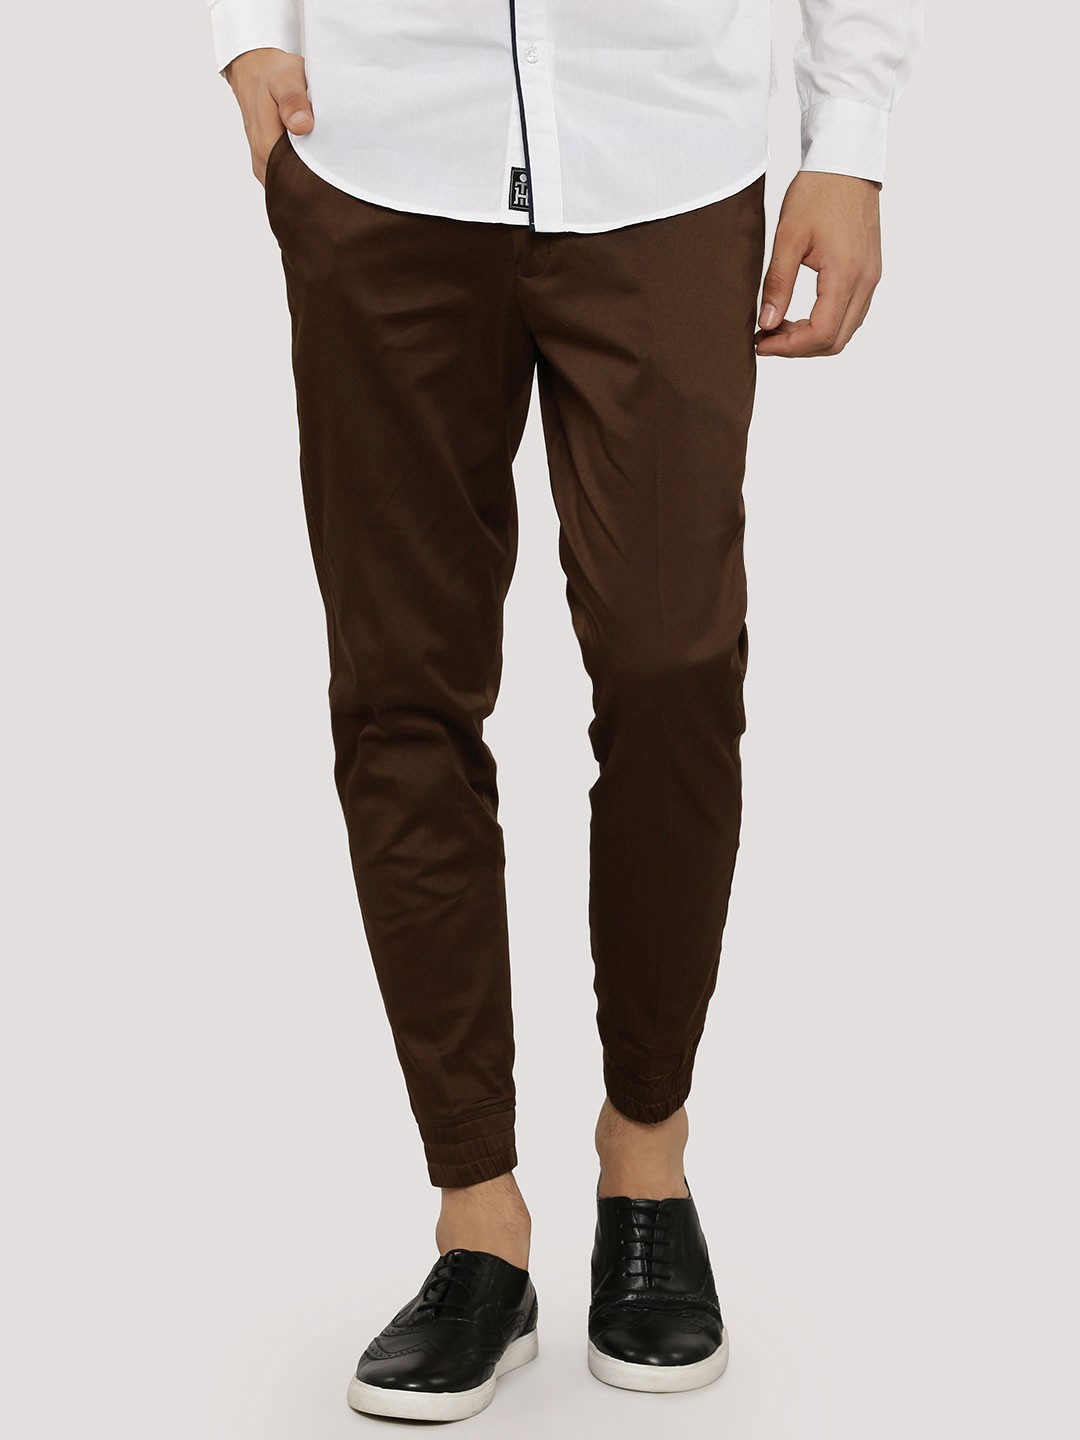 Buy Men's Chinos, Chino Pants online in India. Huge selection of Chinos for Men at dexterminduwi.ga Choose from the widest range of Top brands for Casual trousers/Chinos, Allen Solly, Arrow Sports, Blackberrys, Raymond, United Colors of Benetton and many more.